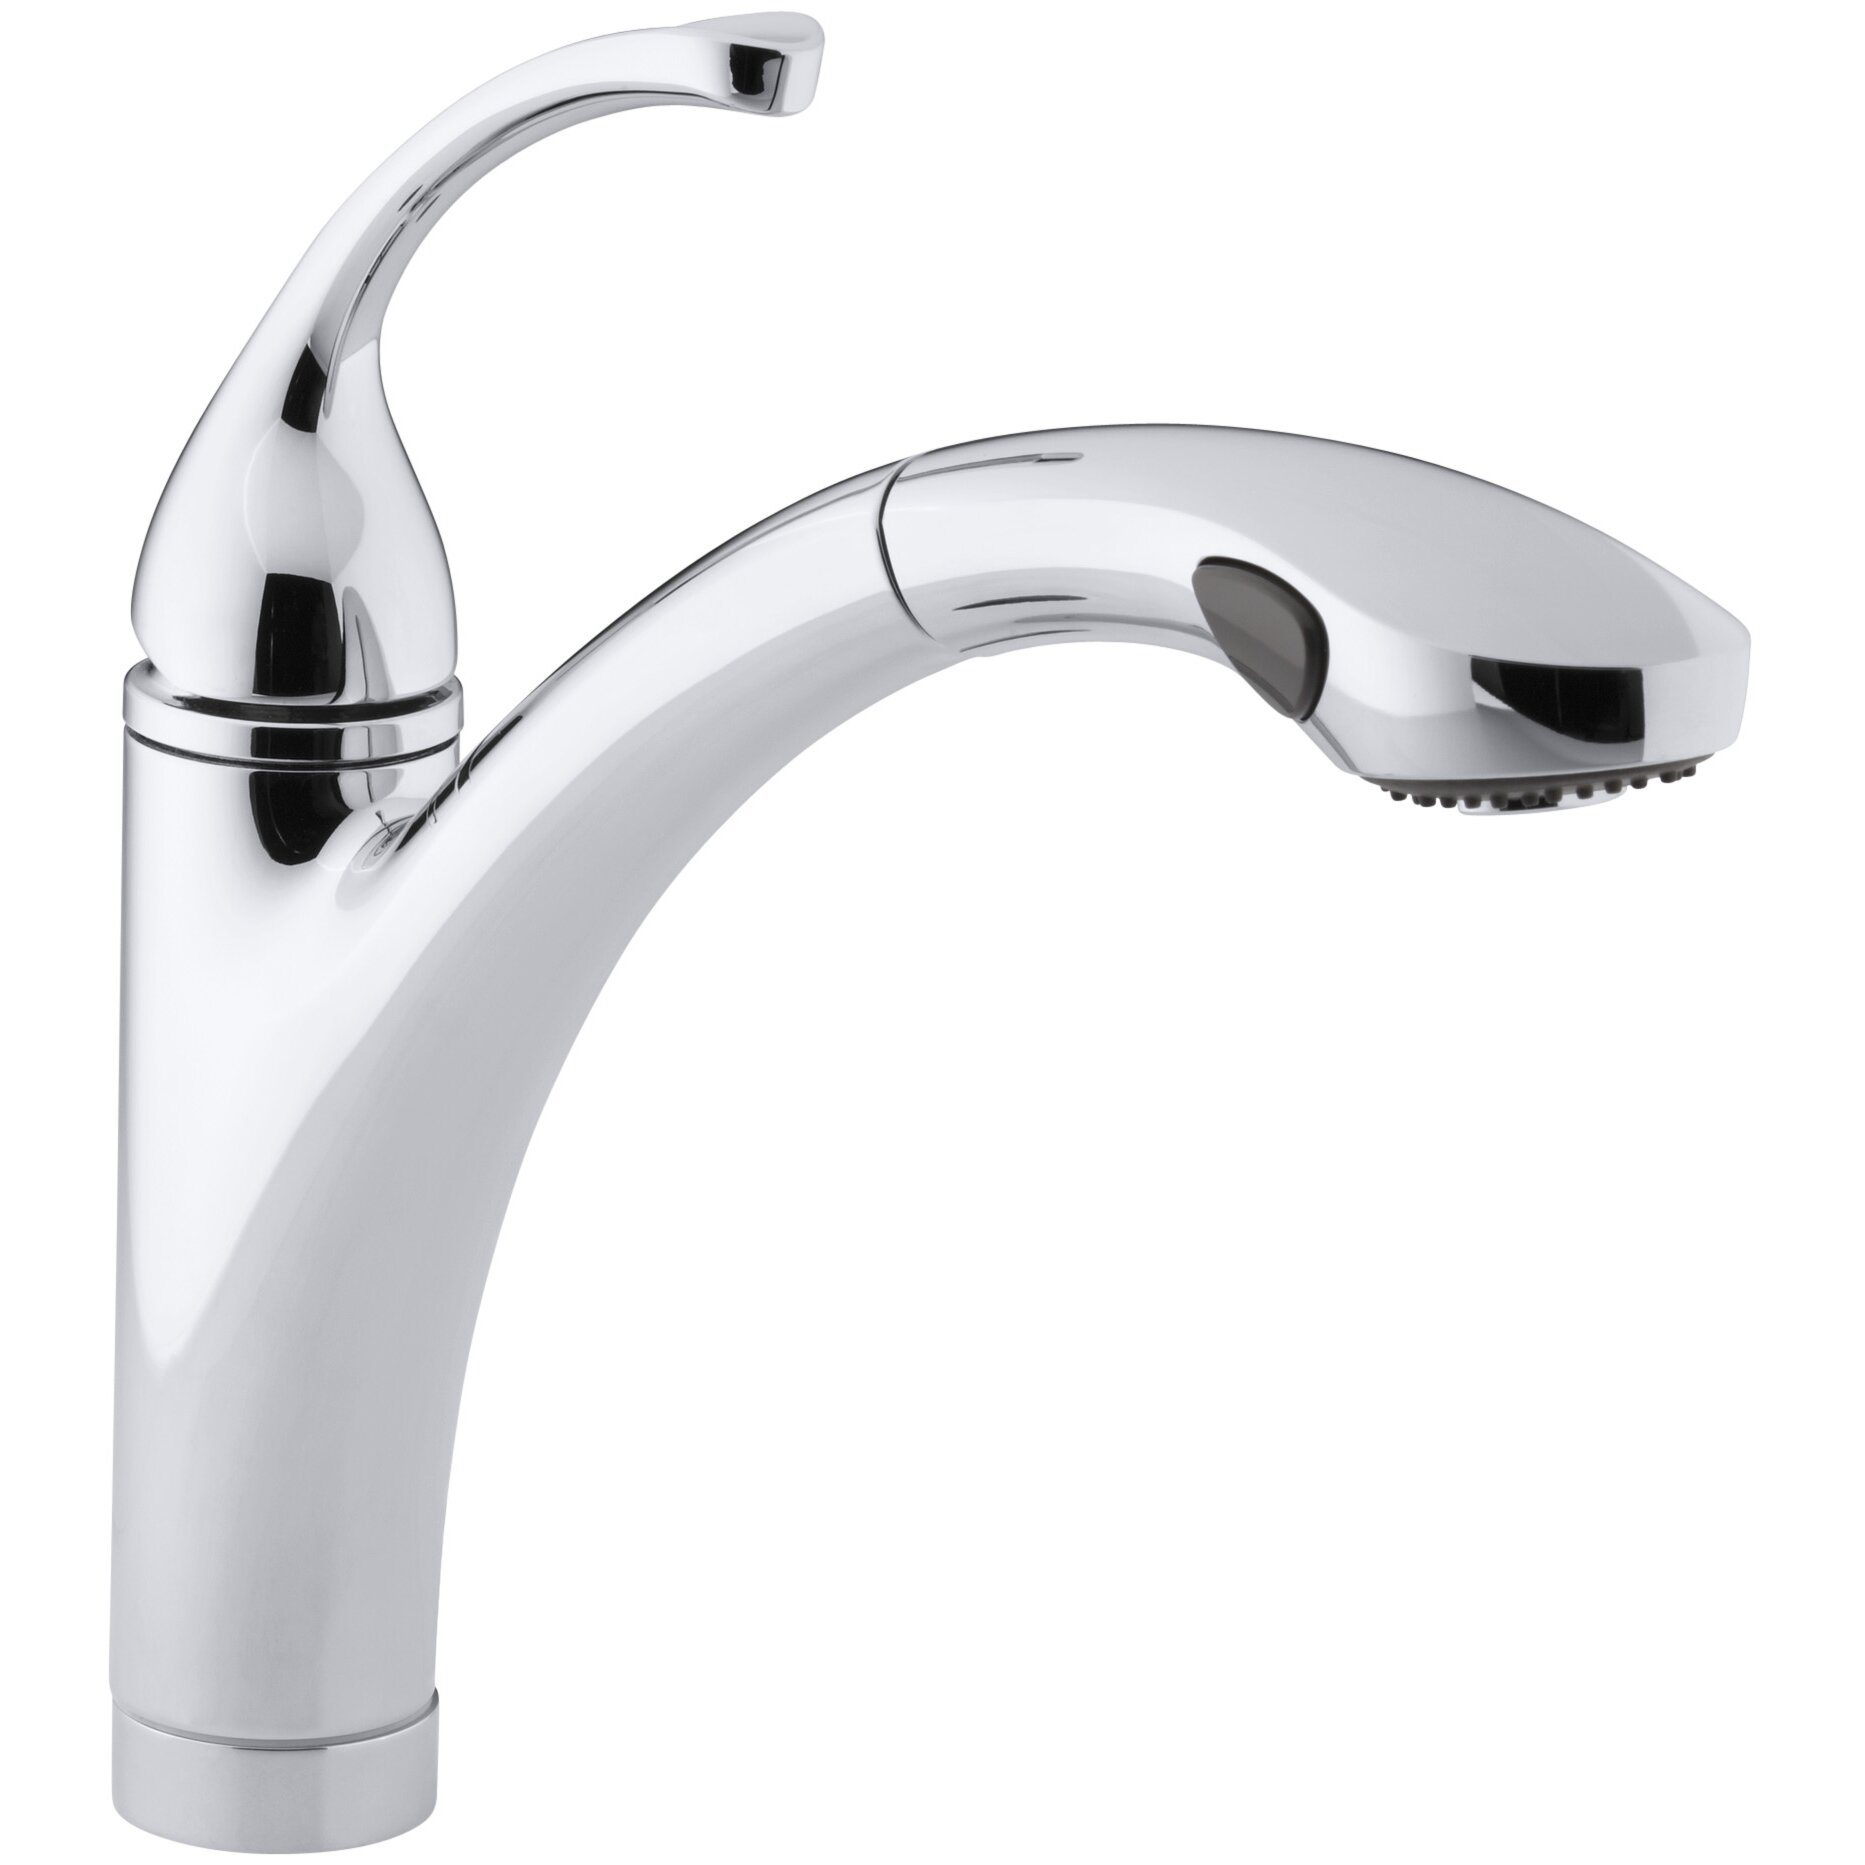 fort singlehole or 3hole kitchen sink faucet with 101